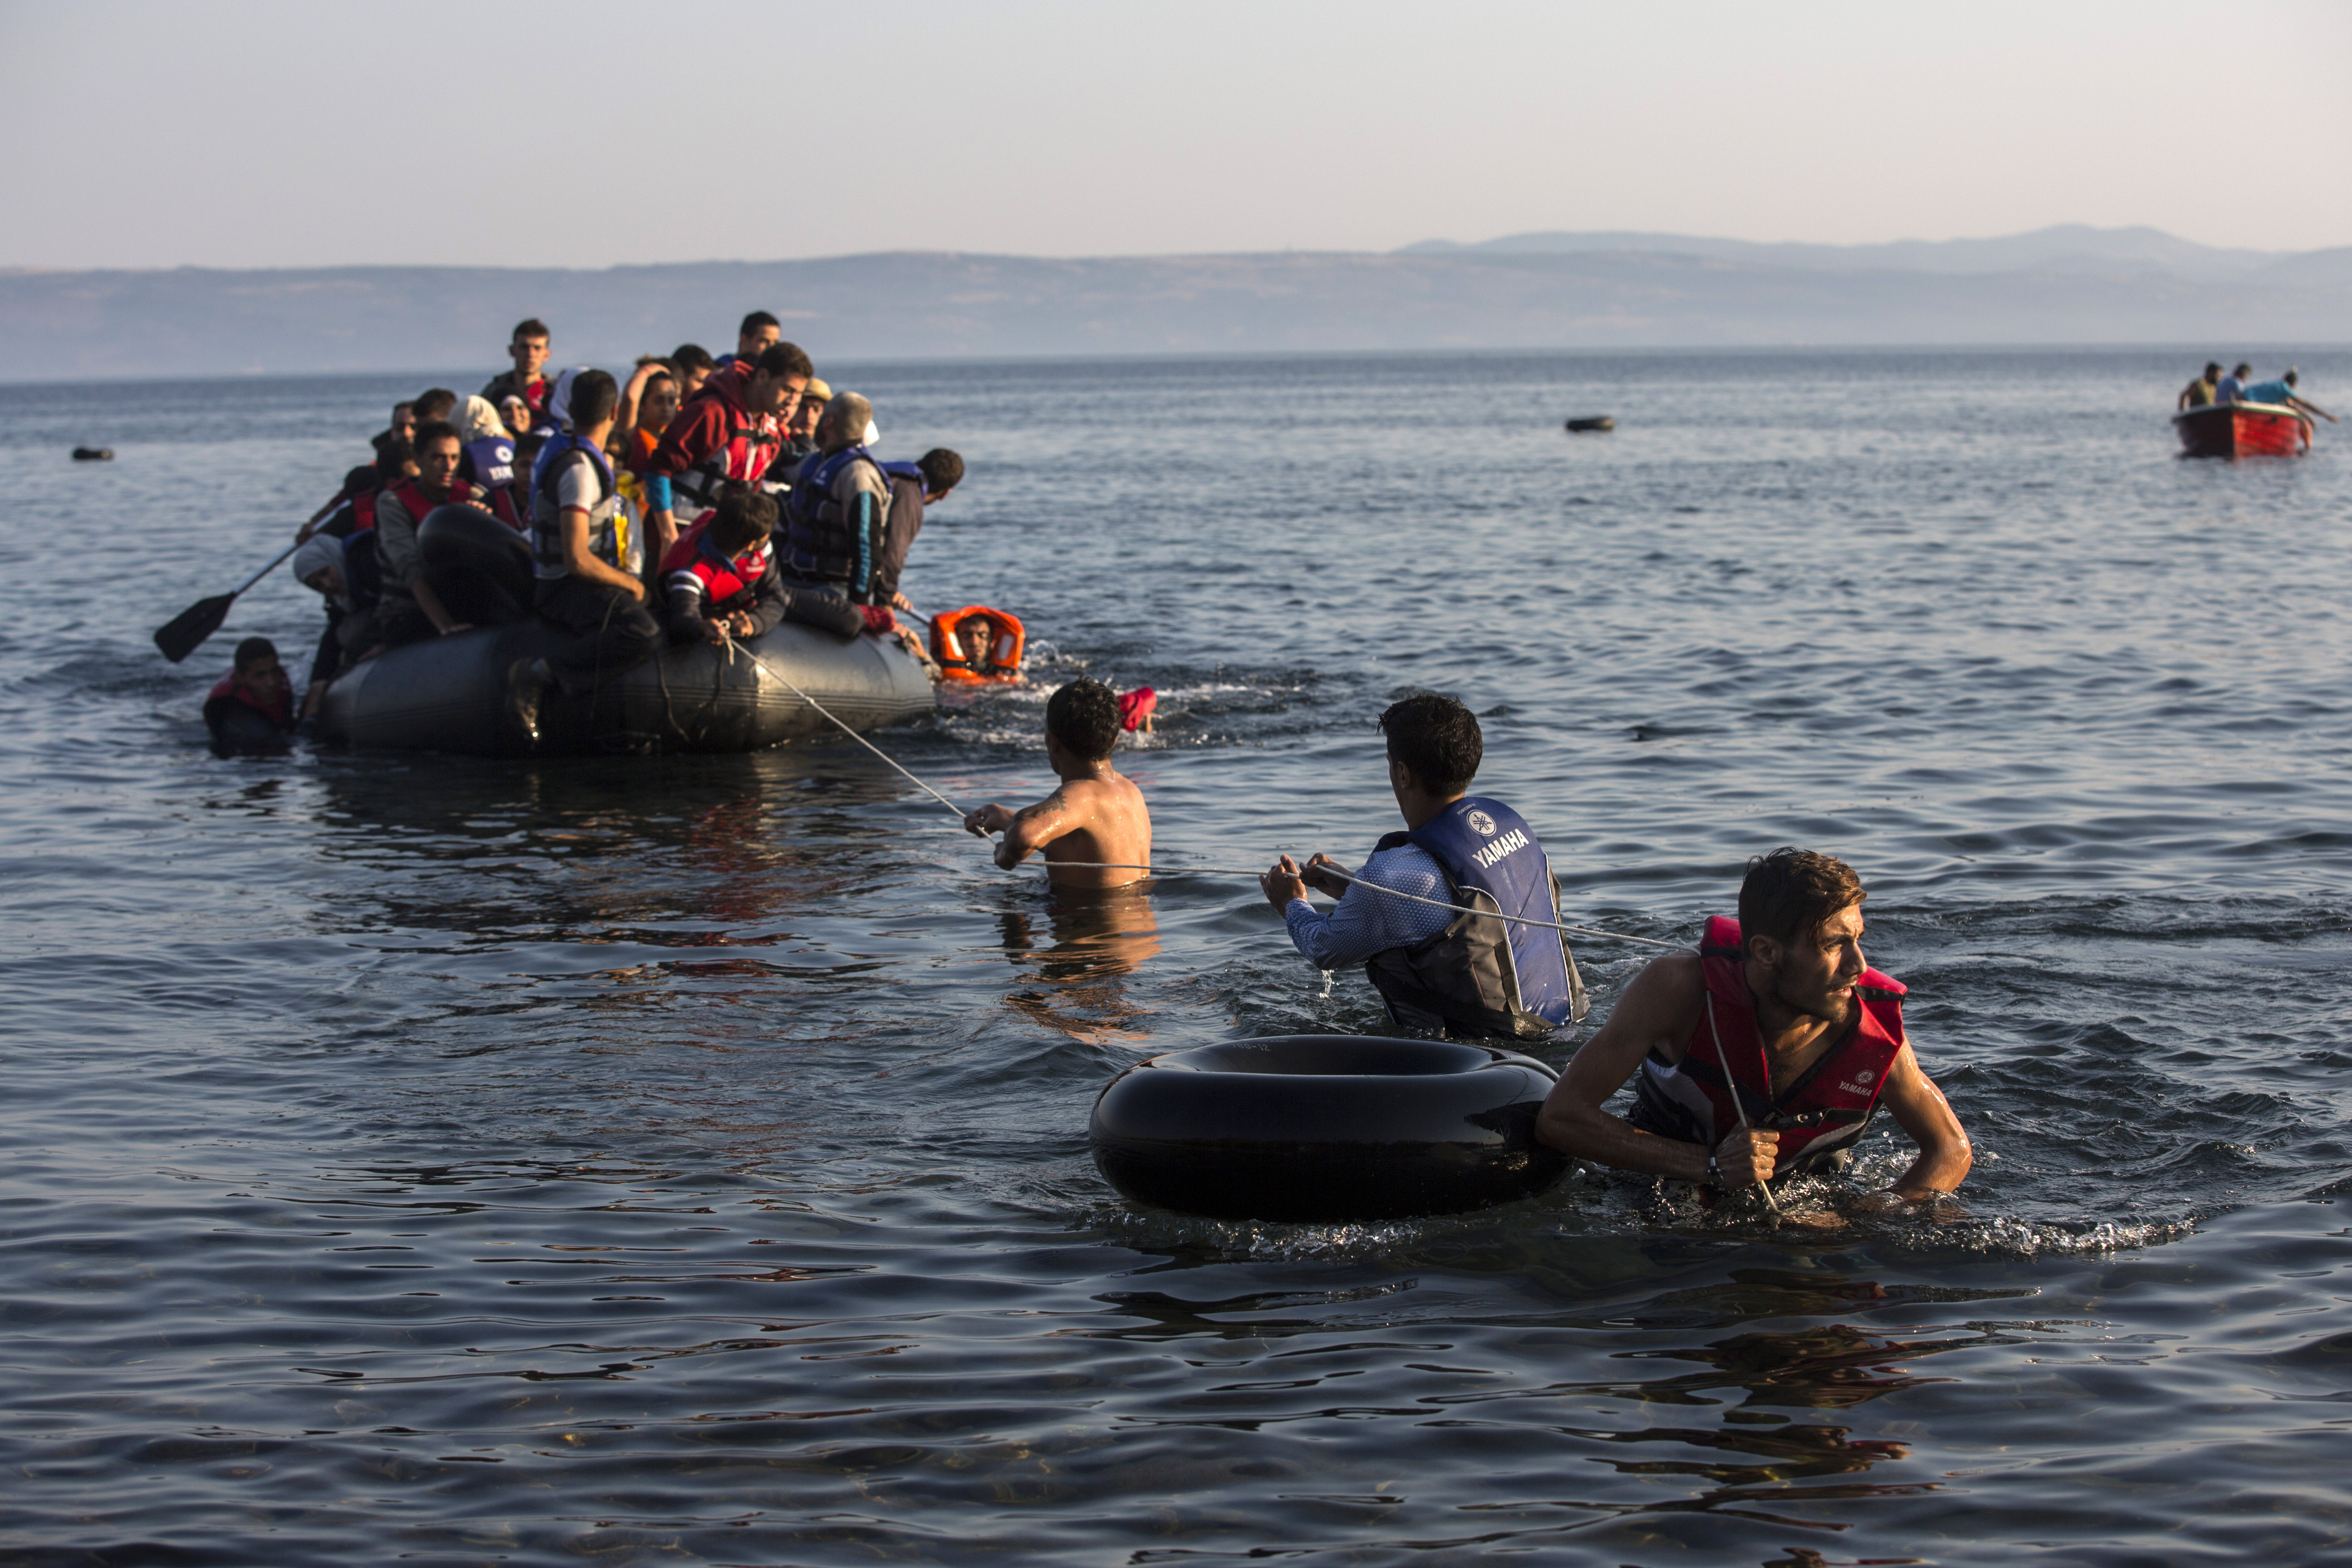 Greek Islands Affected By Refugees